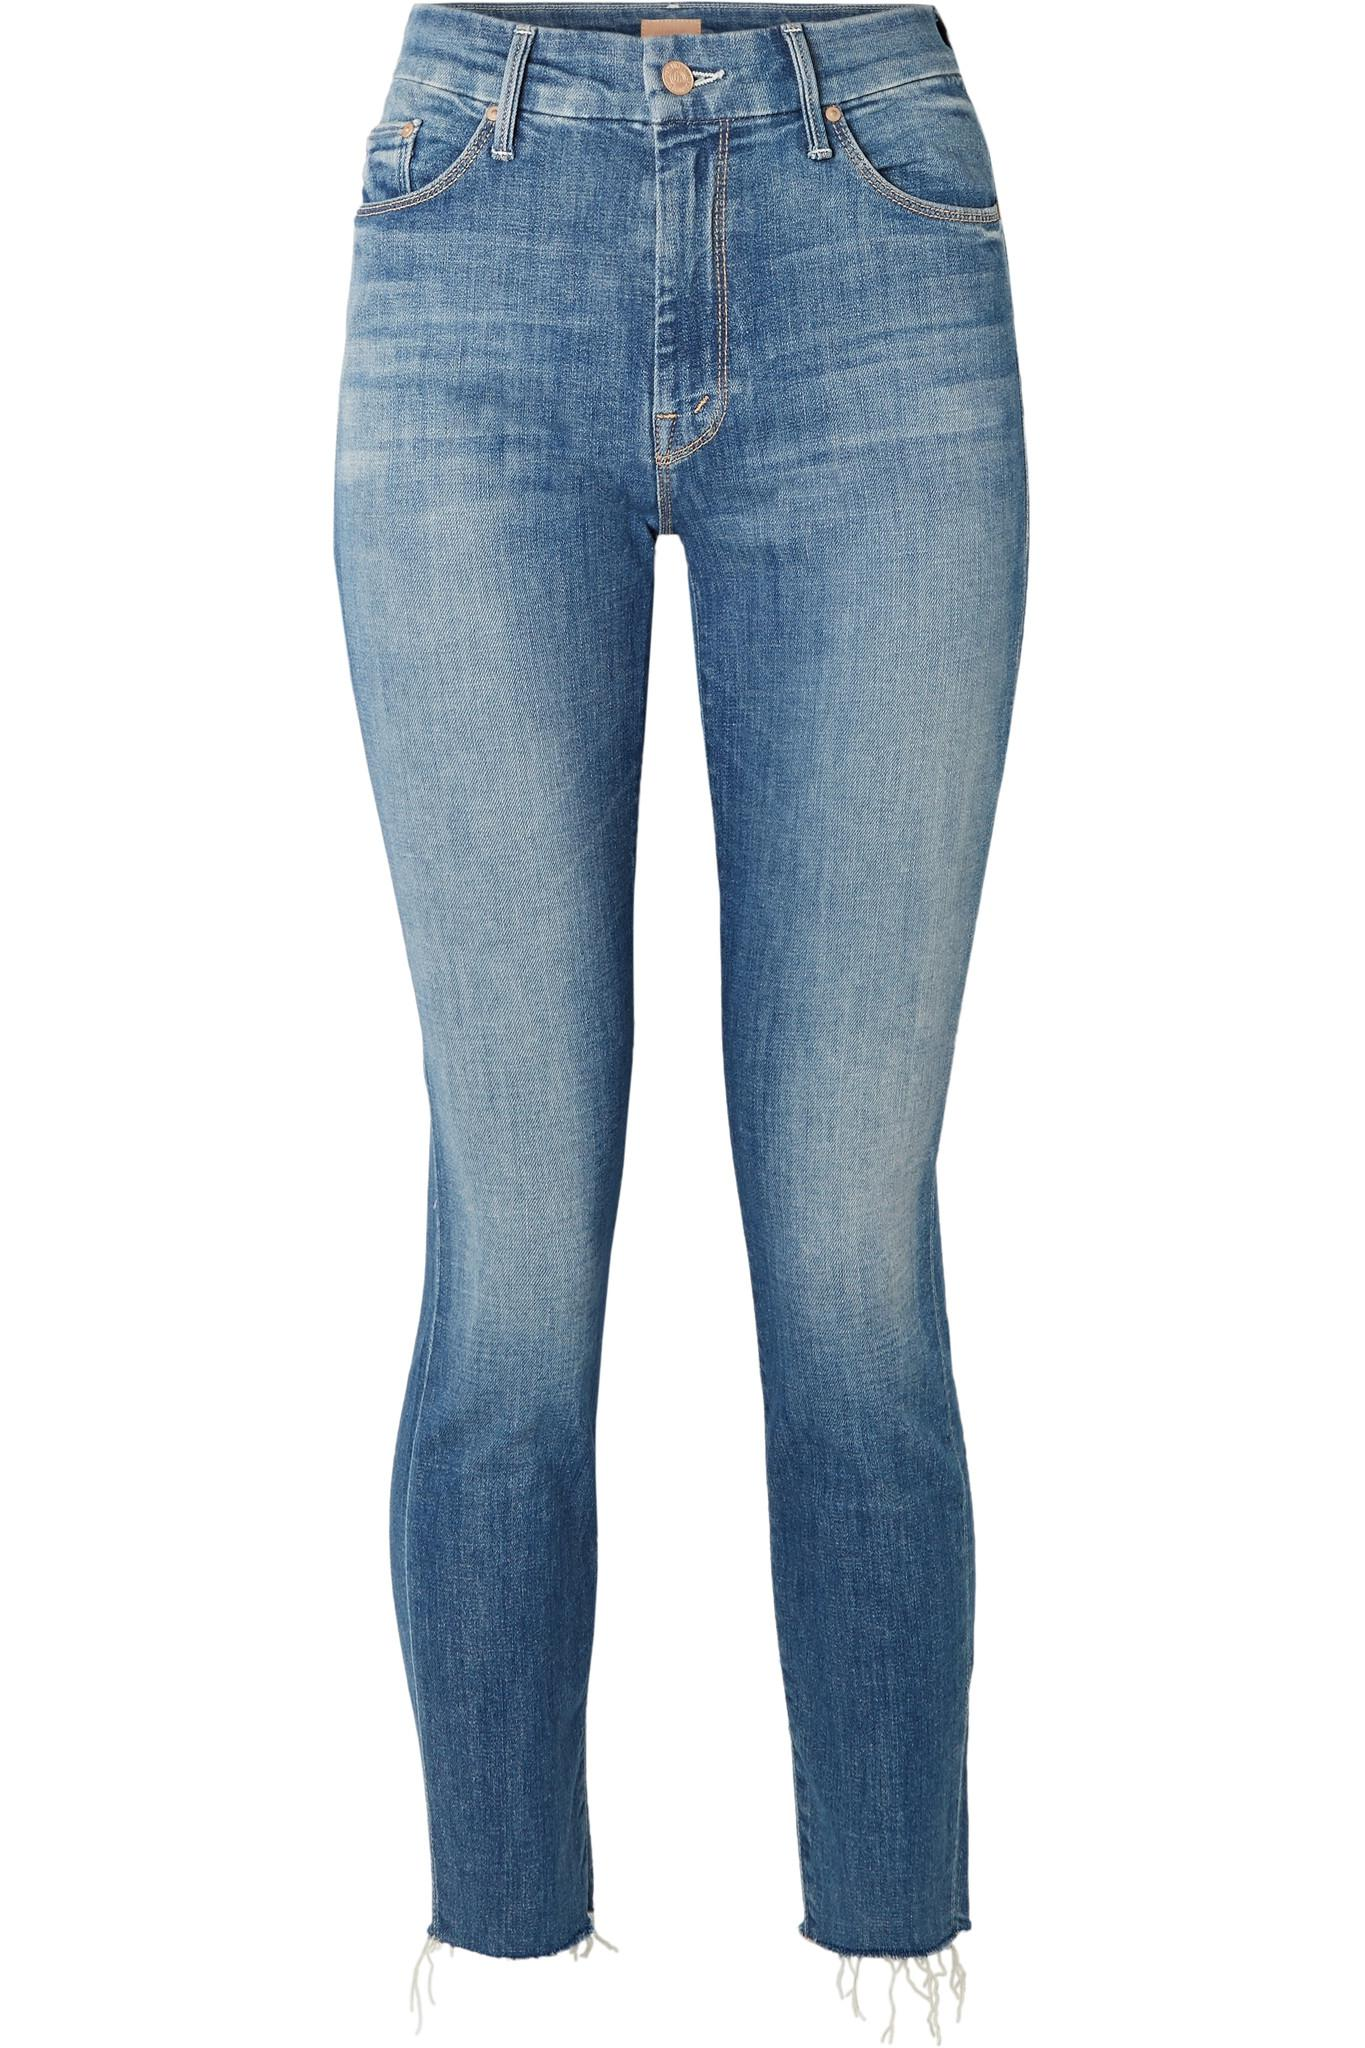 The Looker Cropped High-rise Skinny Jeans - Mid denim Mother fXjhHUkT7